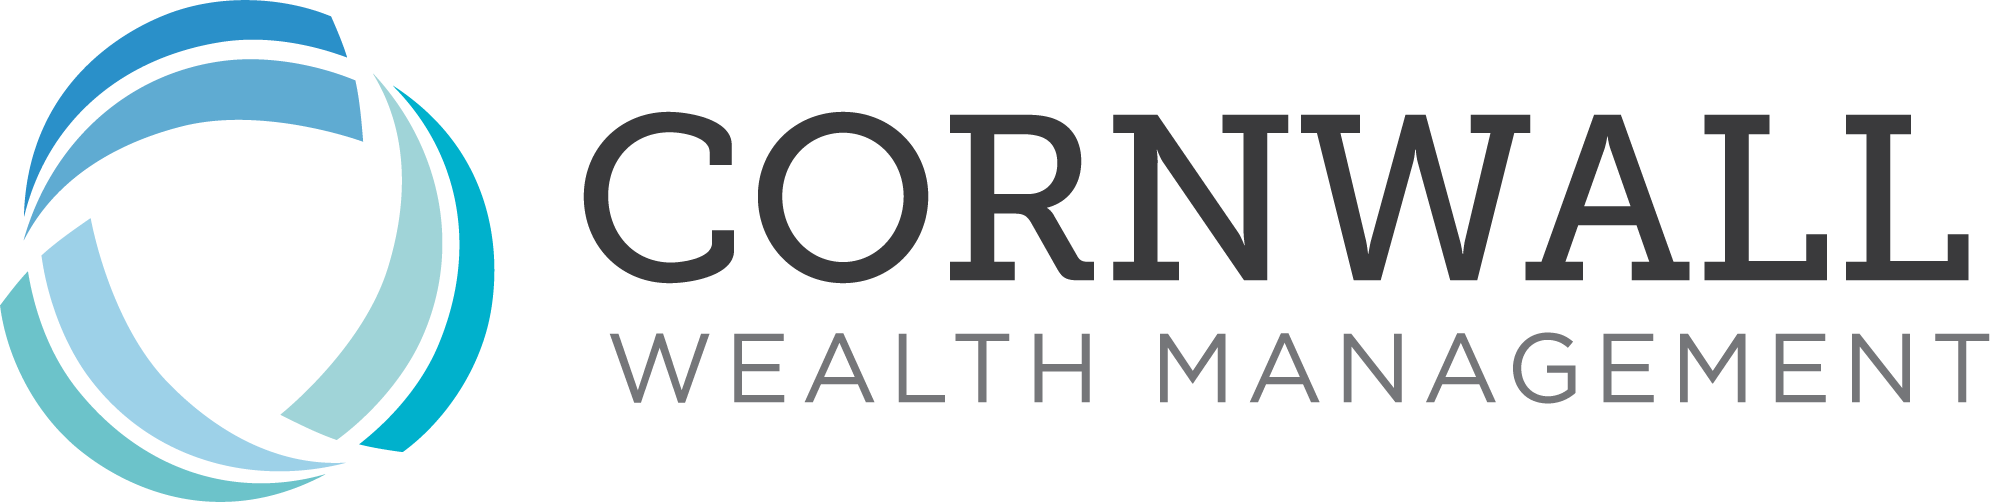 Logo for Cornwall Wealth Management